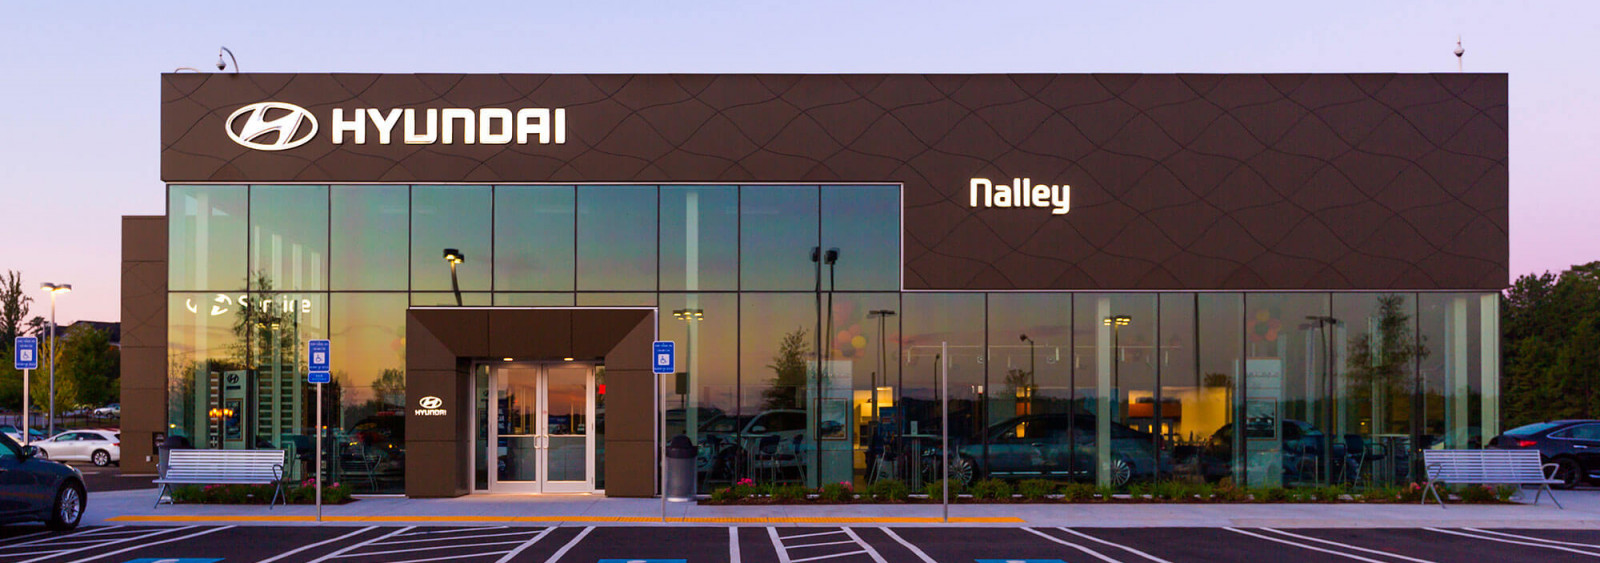 Bringing new global standards to life at dealerships across the U.S.